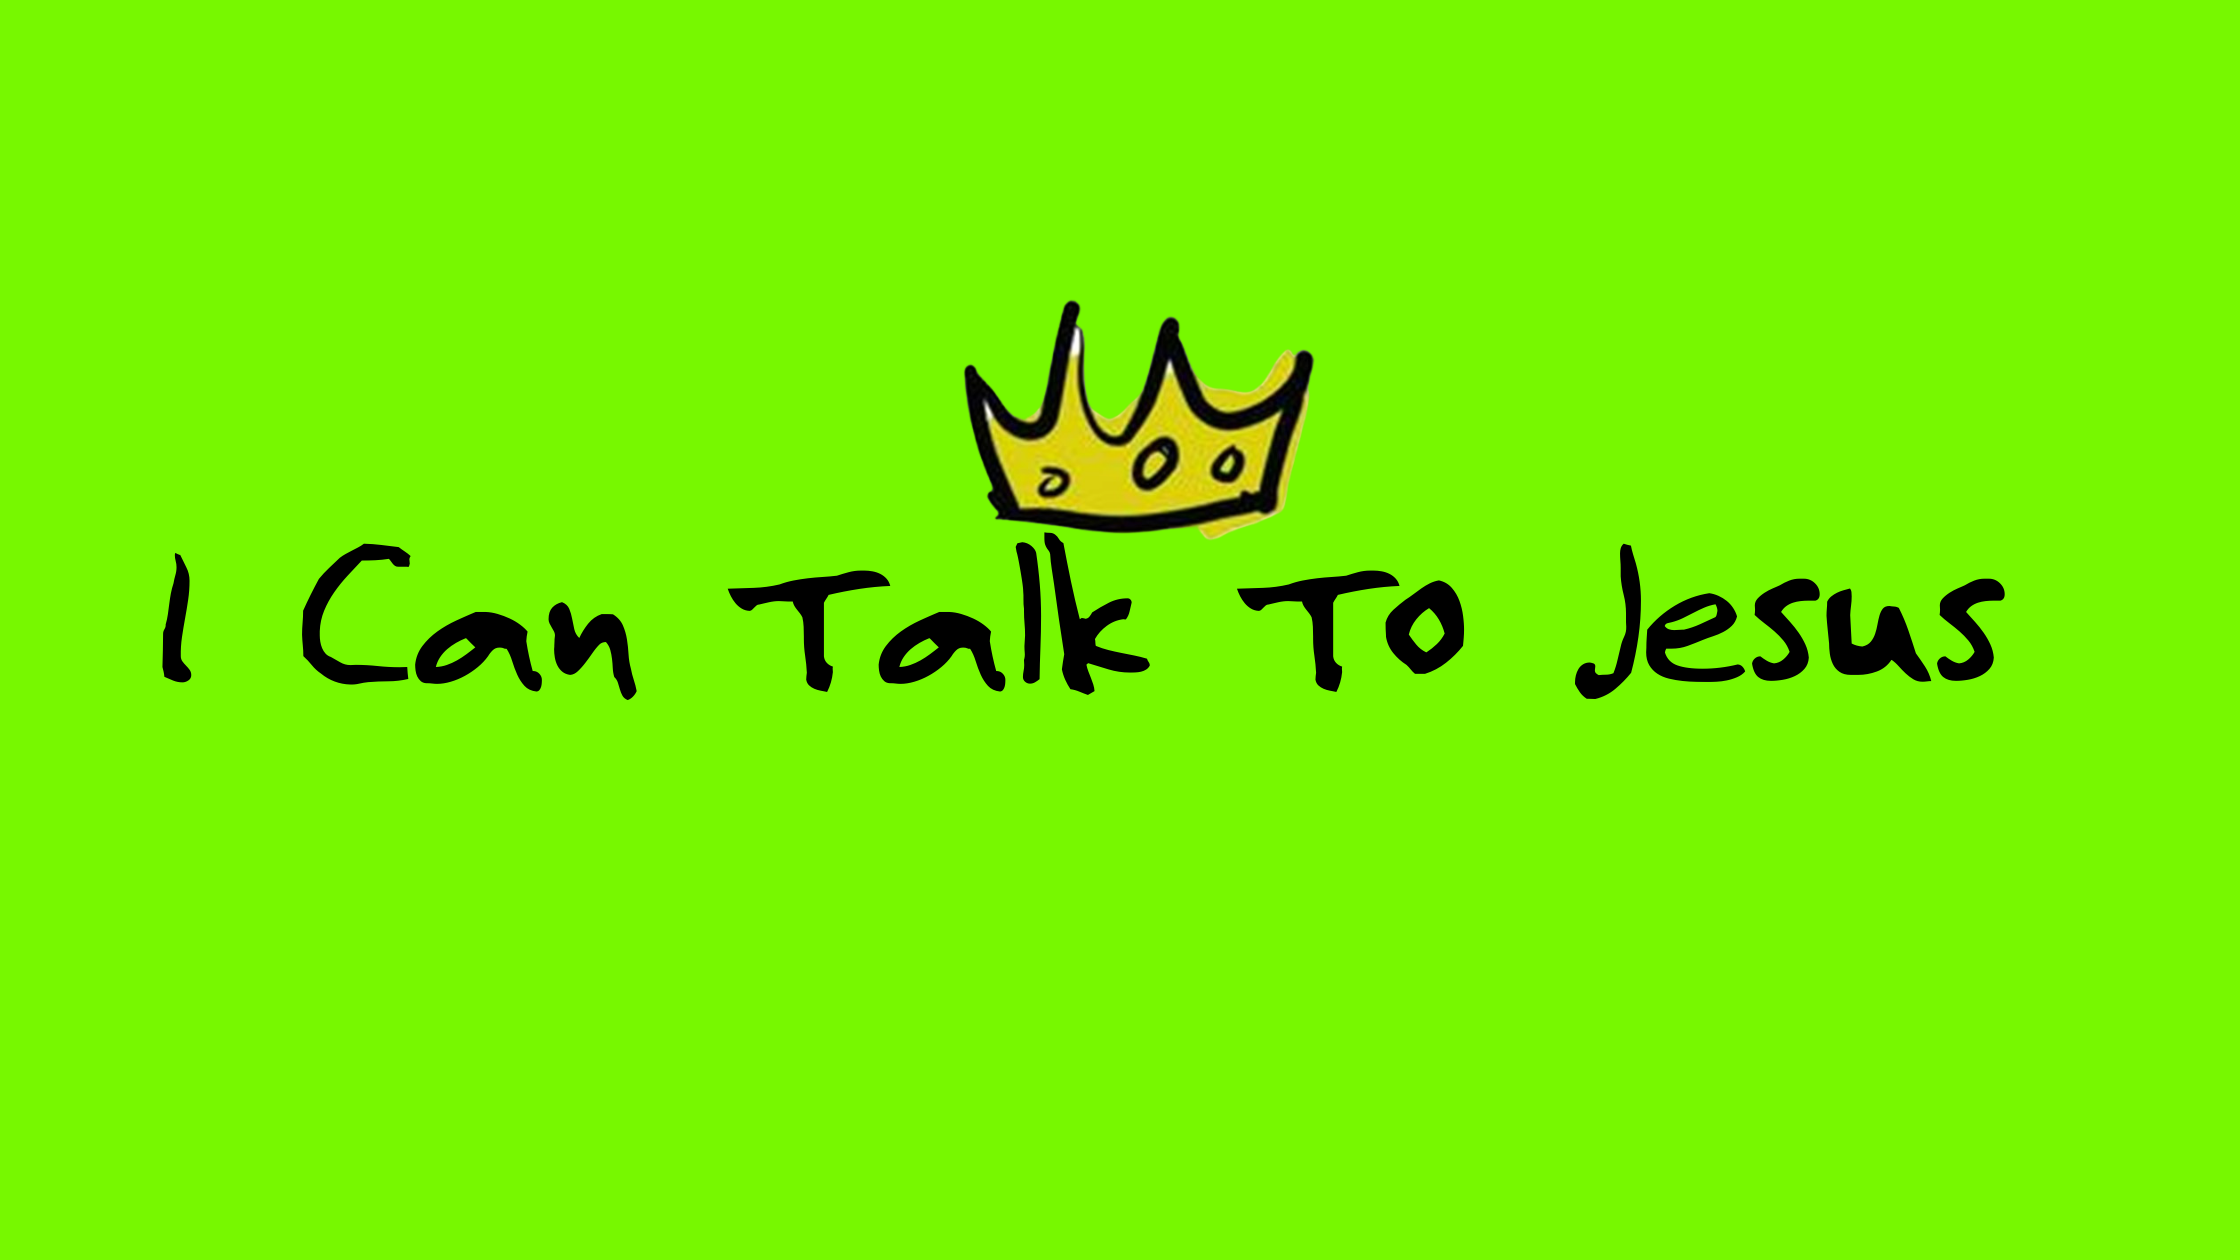 I Can Talk To Jesus